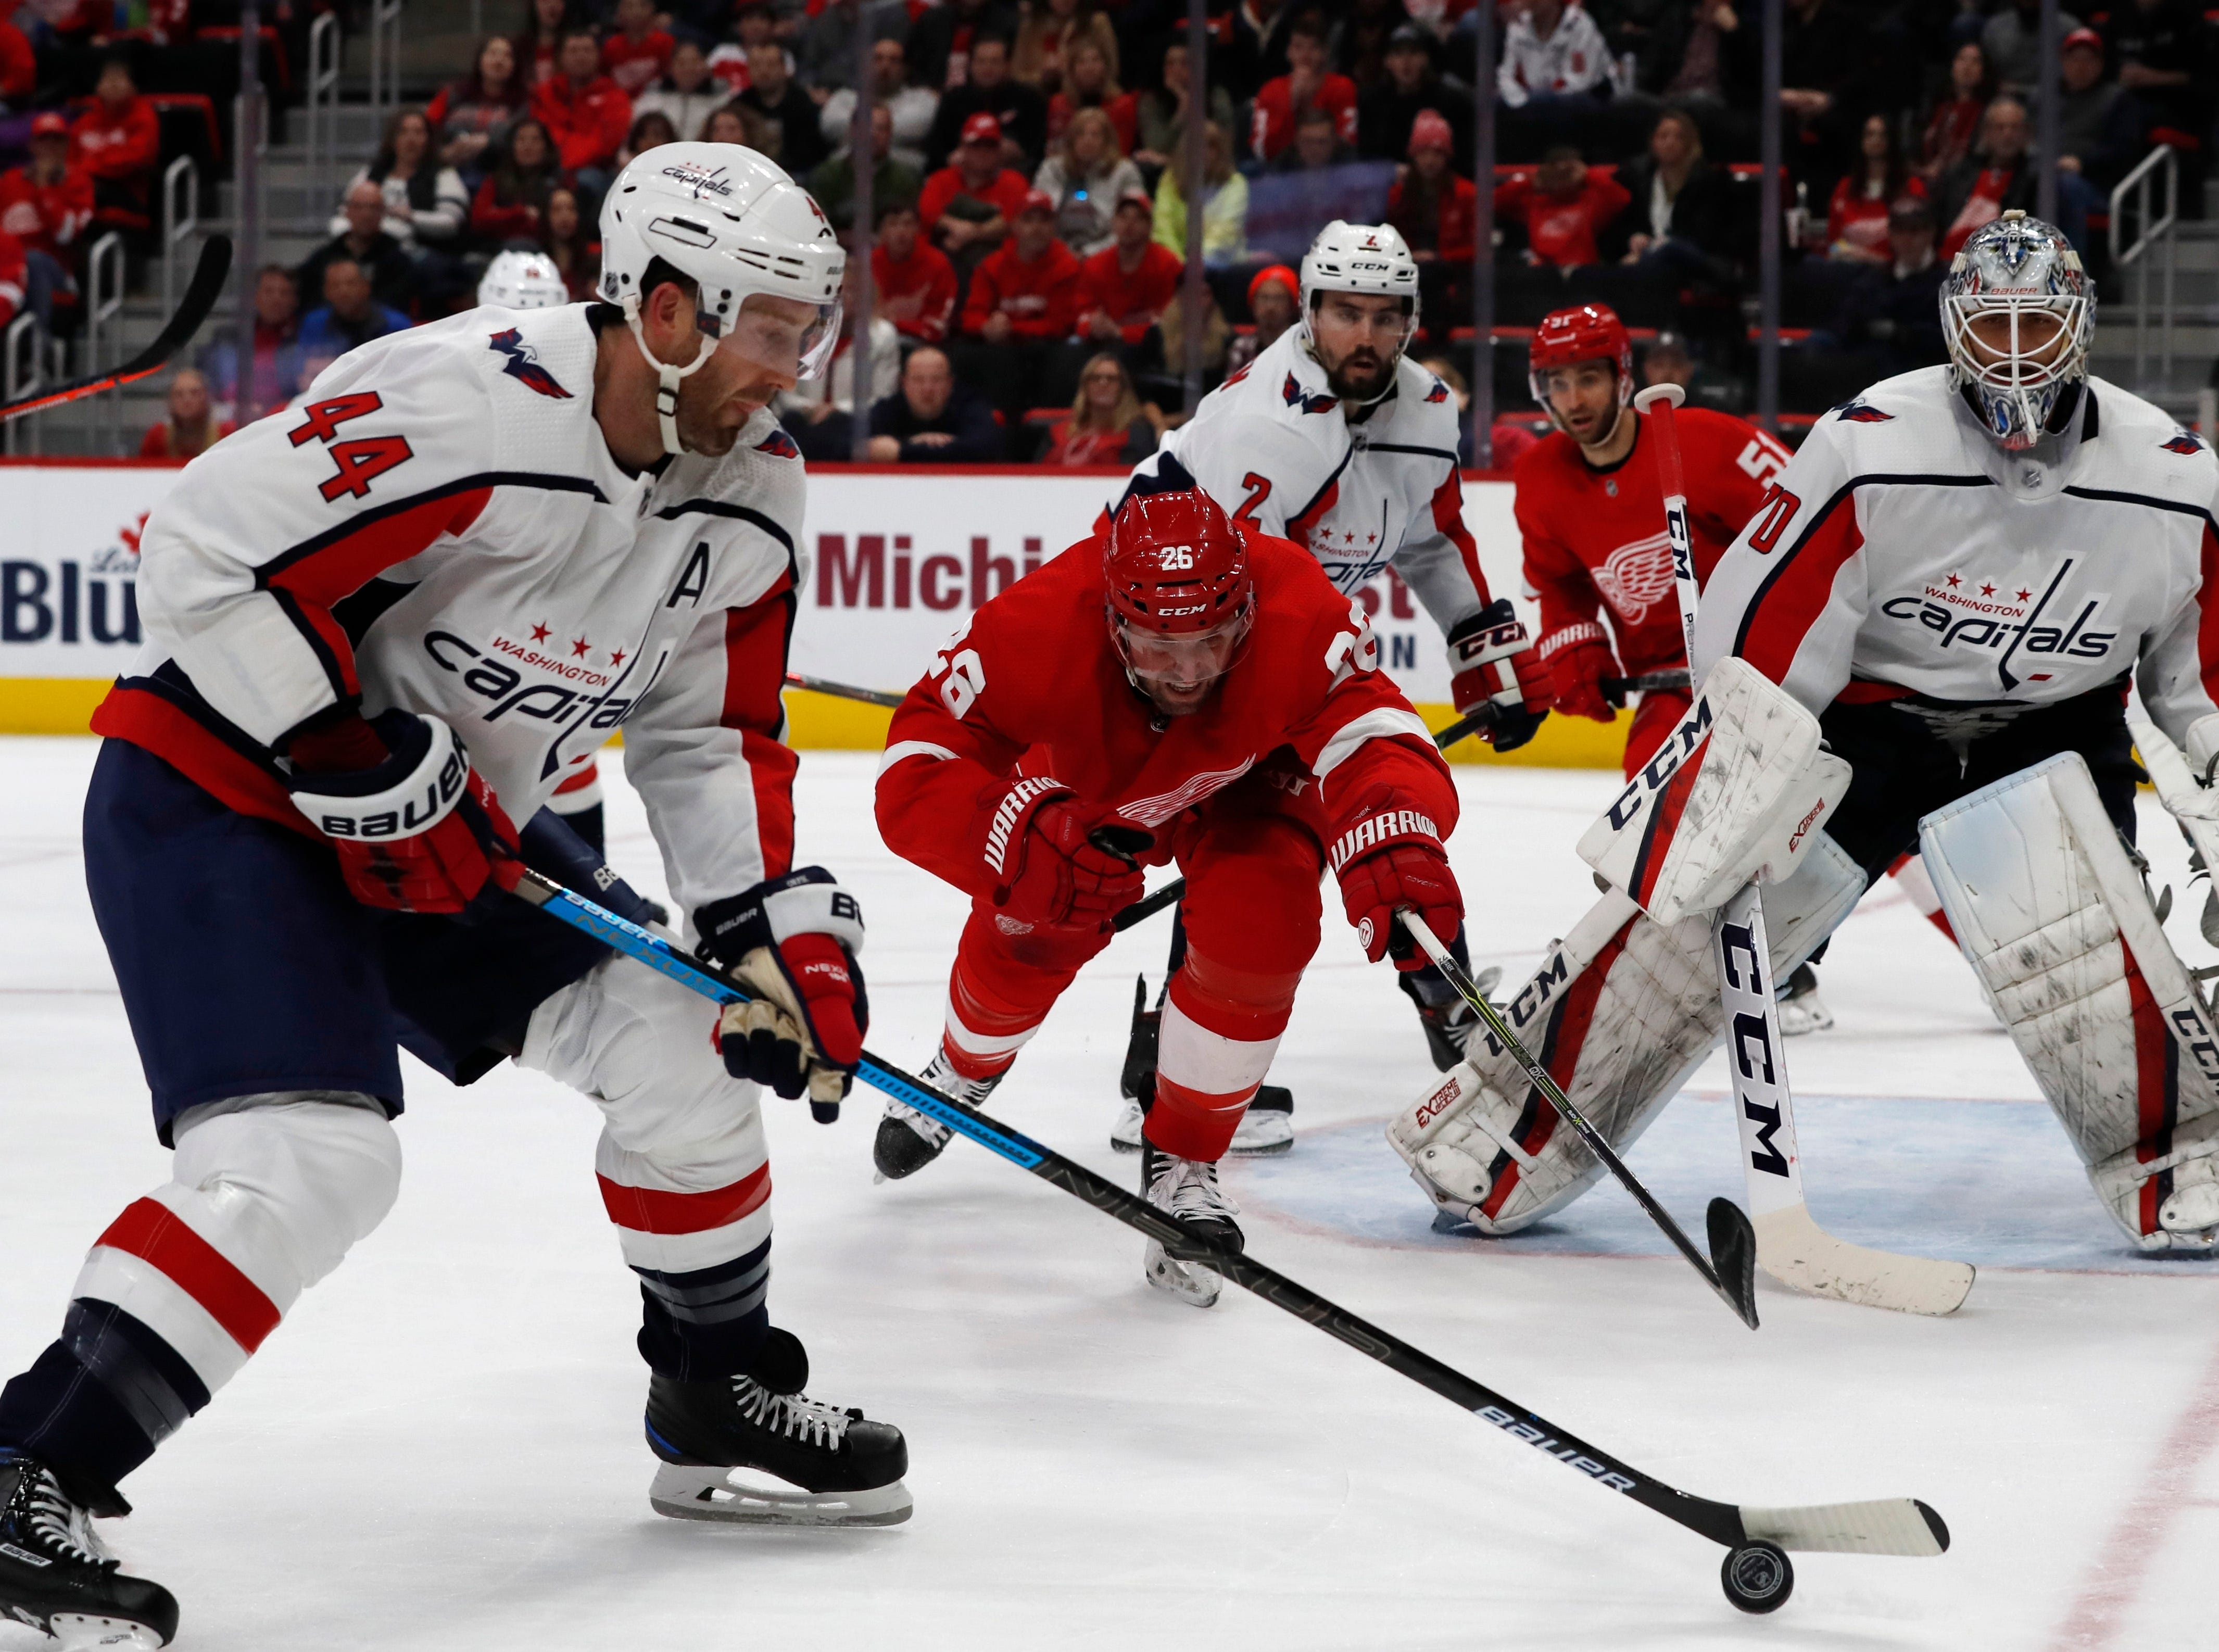 Washington Capitals defenseman Brooks Orpik (44) controls the puck as Detroit Red Wings left wing Thomas Vanek (26) reaches in during the third period.